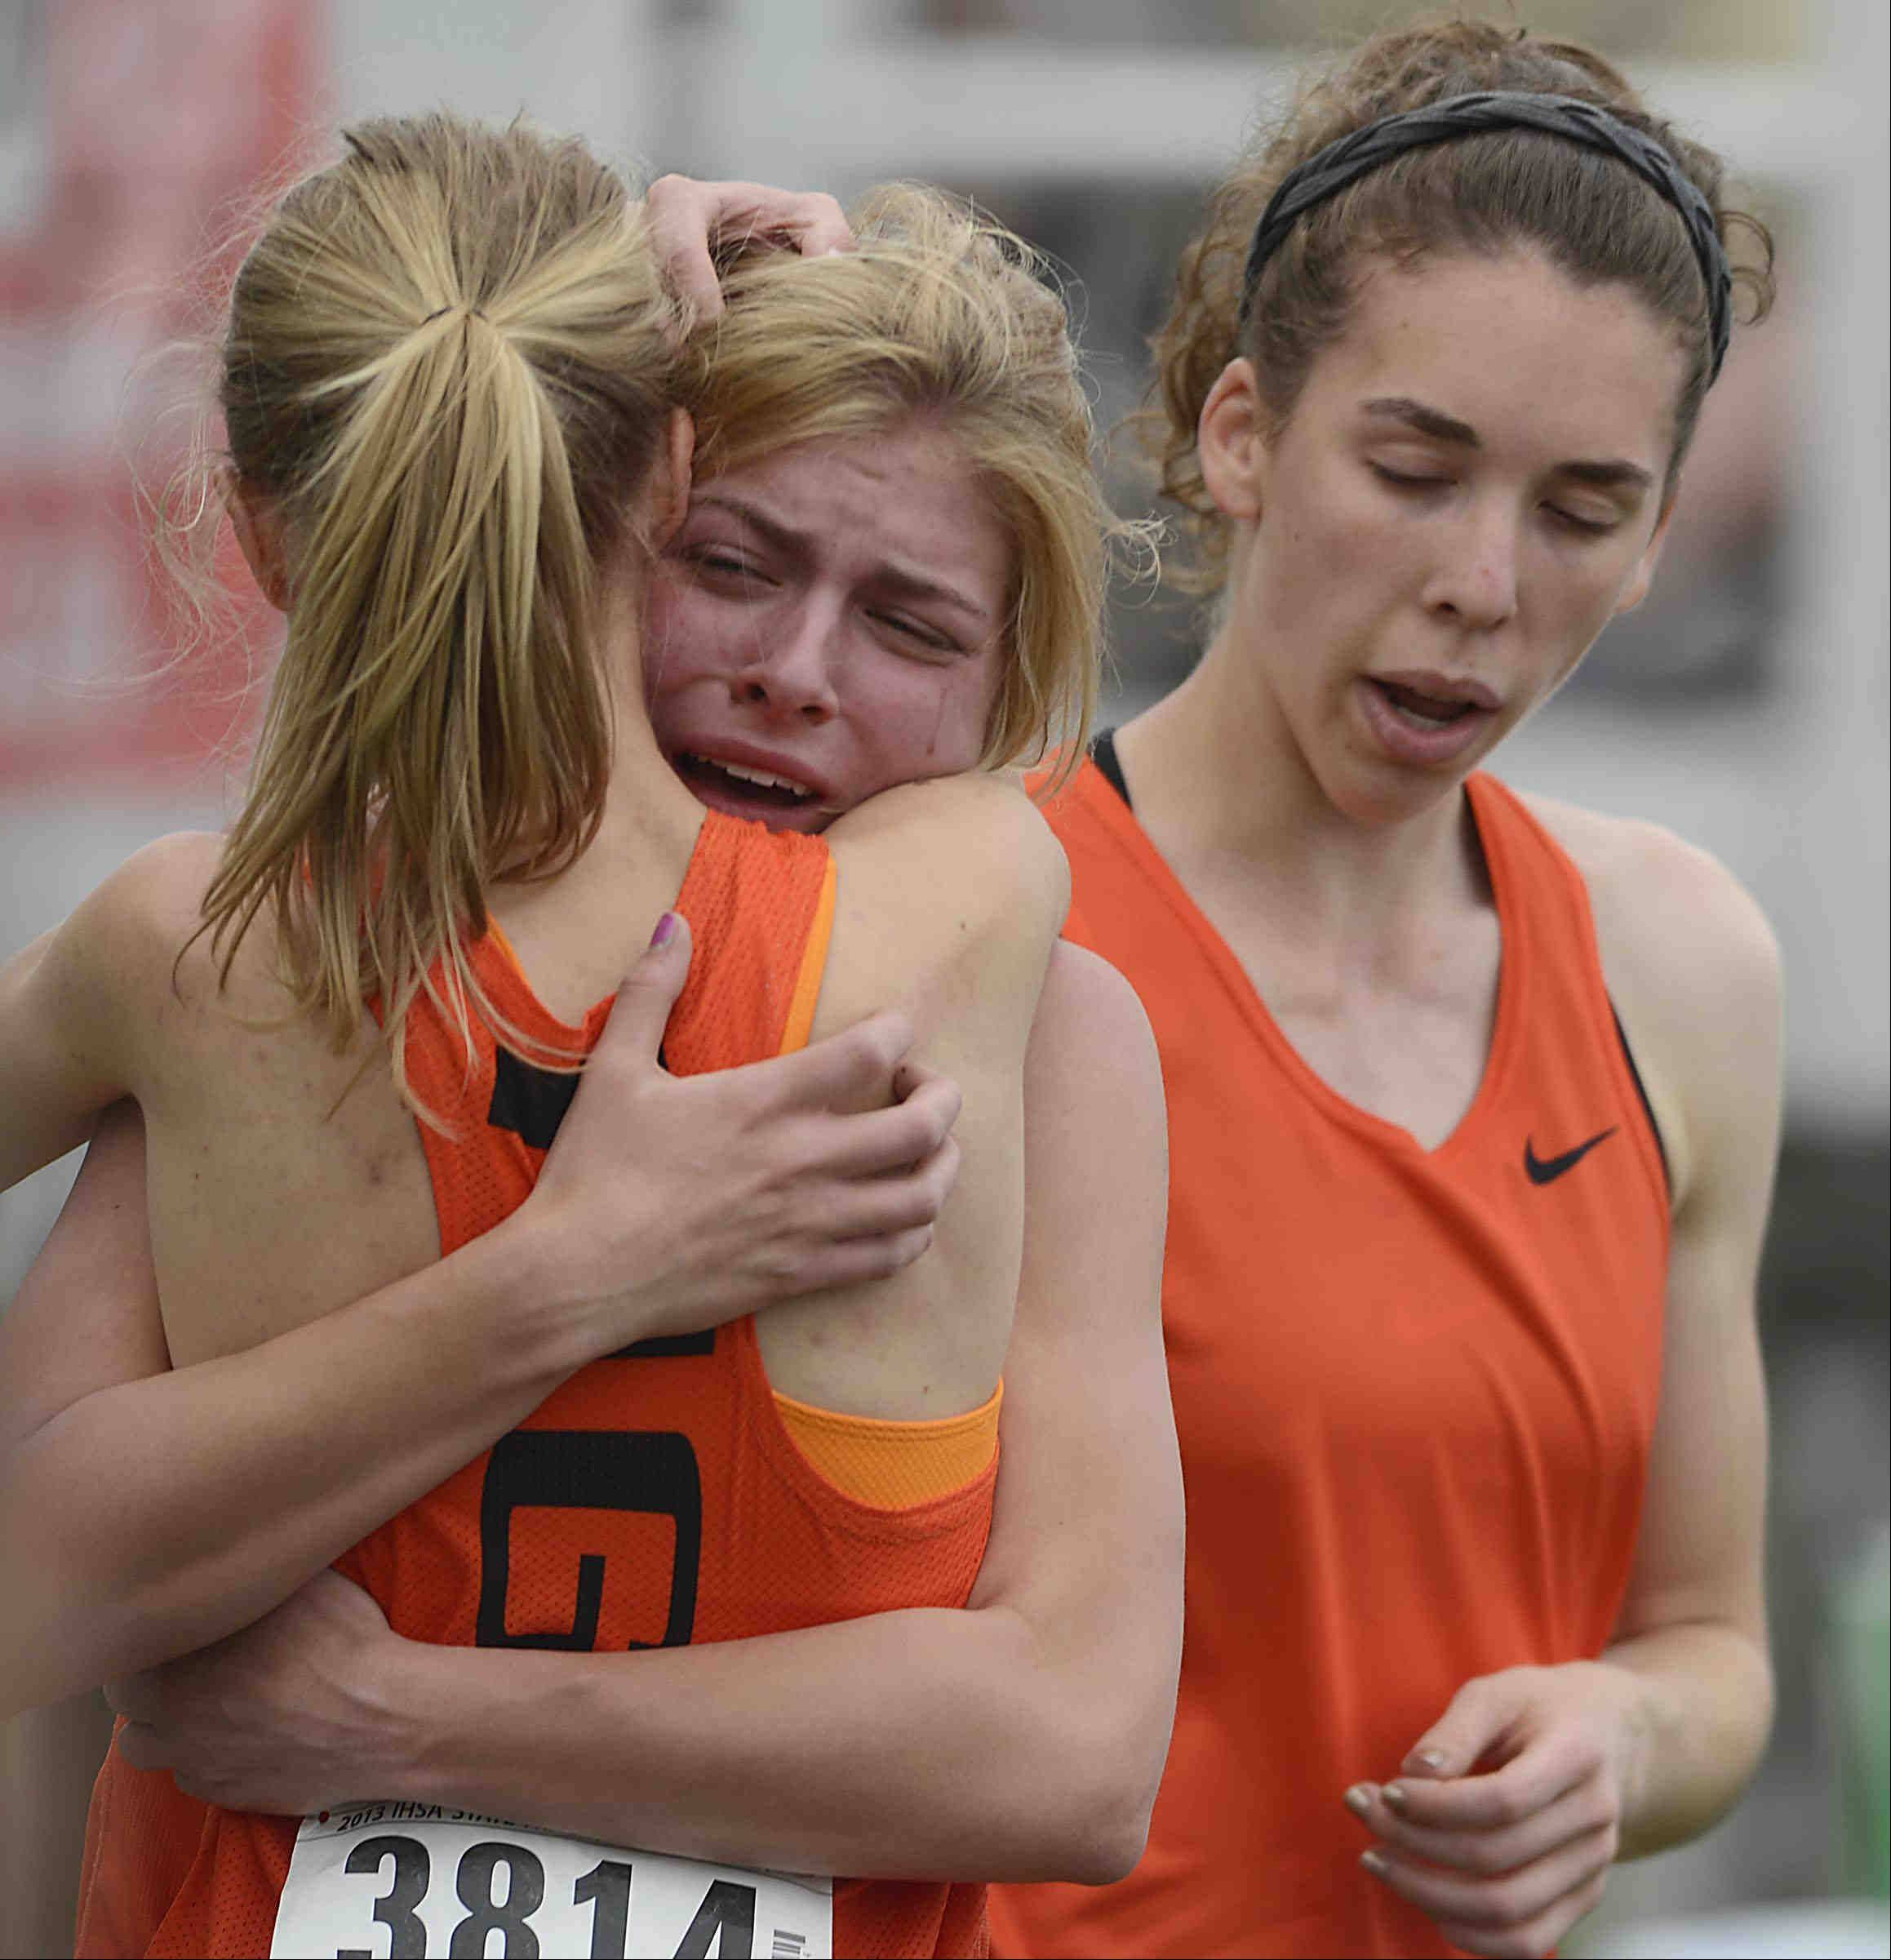 Wheaton Warrenville South's Emma Dalan cries and hugs 1,600 meter relay teammate Helen Majer as leadoff runner Jessica Spera joins them Friday at the Class 3A girls state track and field preliminaries at O'Brien Stadium at Eastern Illinois University in Charleston. Dalan fell and dropped the baton as she approached Majer for the handoff.